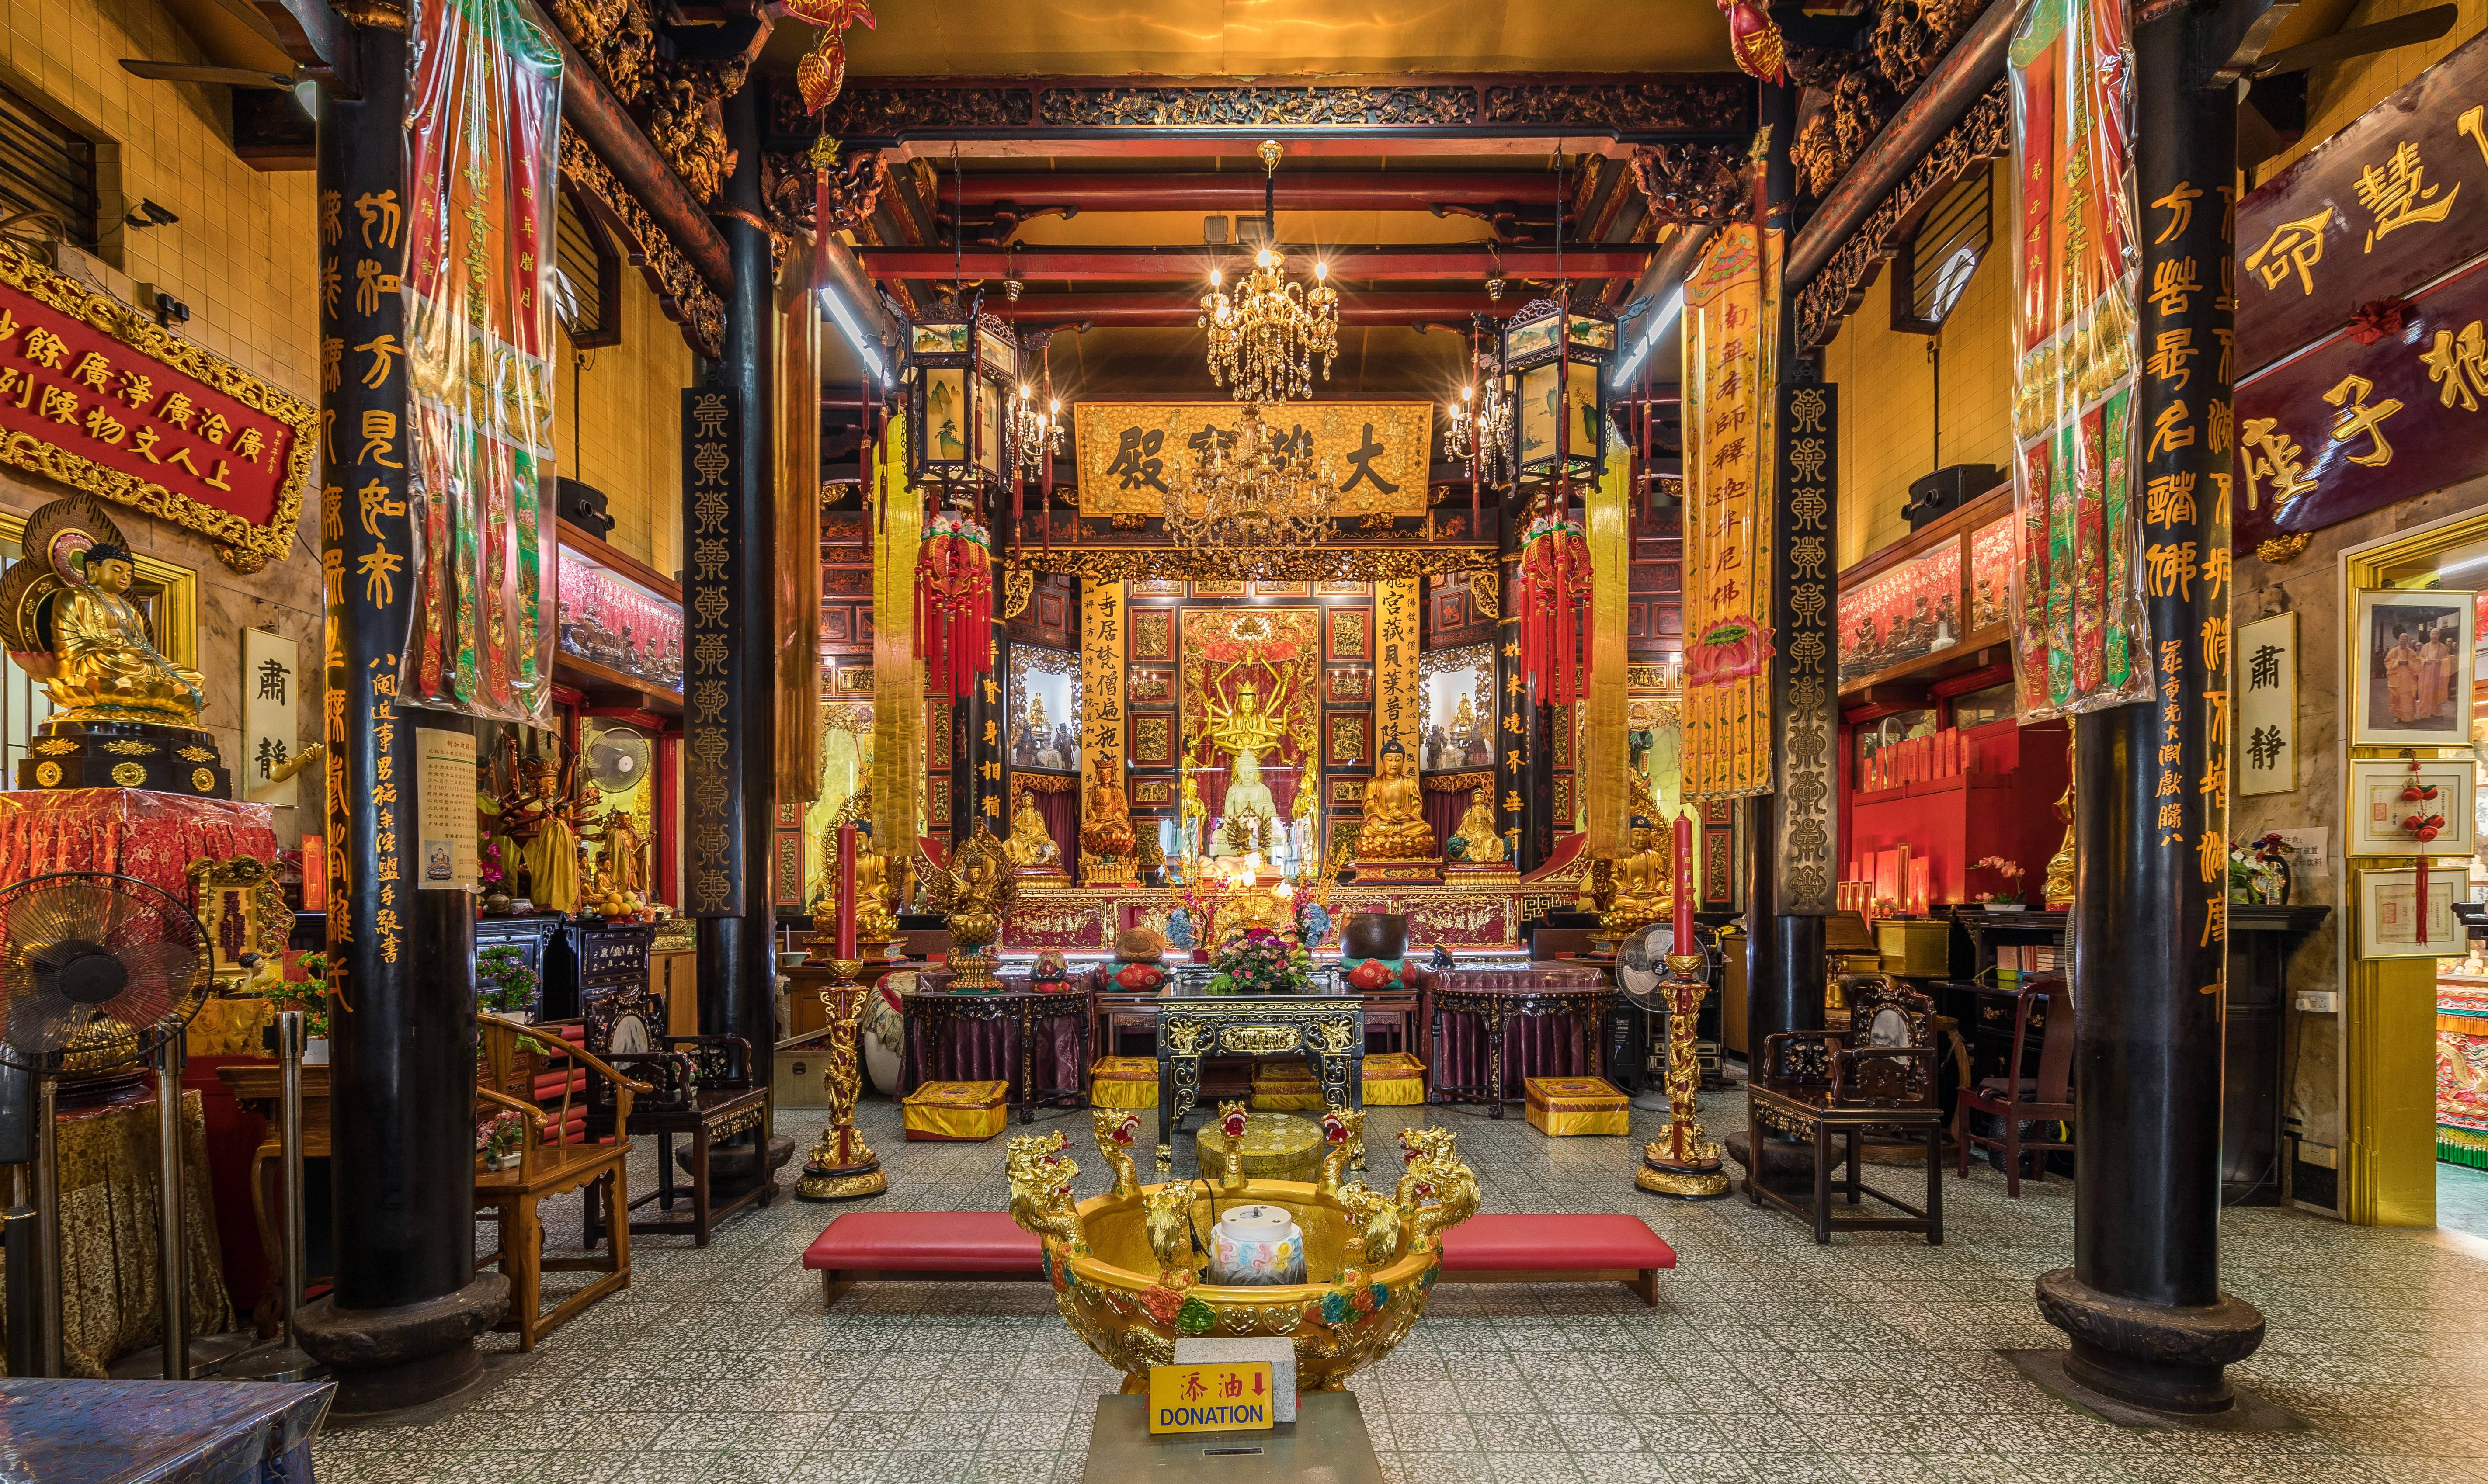 Interior of the Leong San See temple Singapore large view